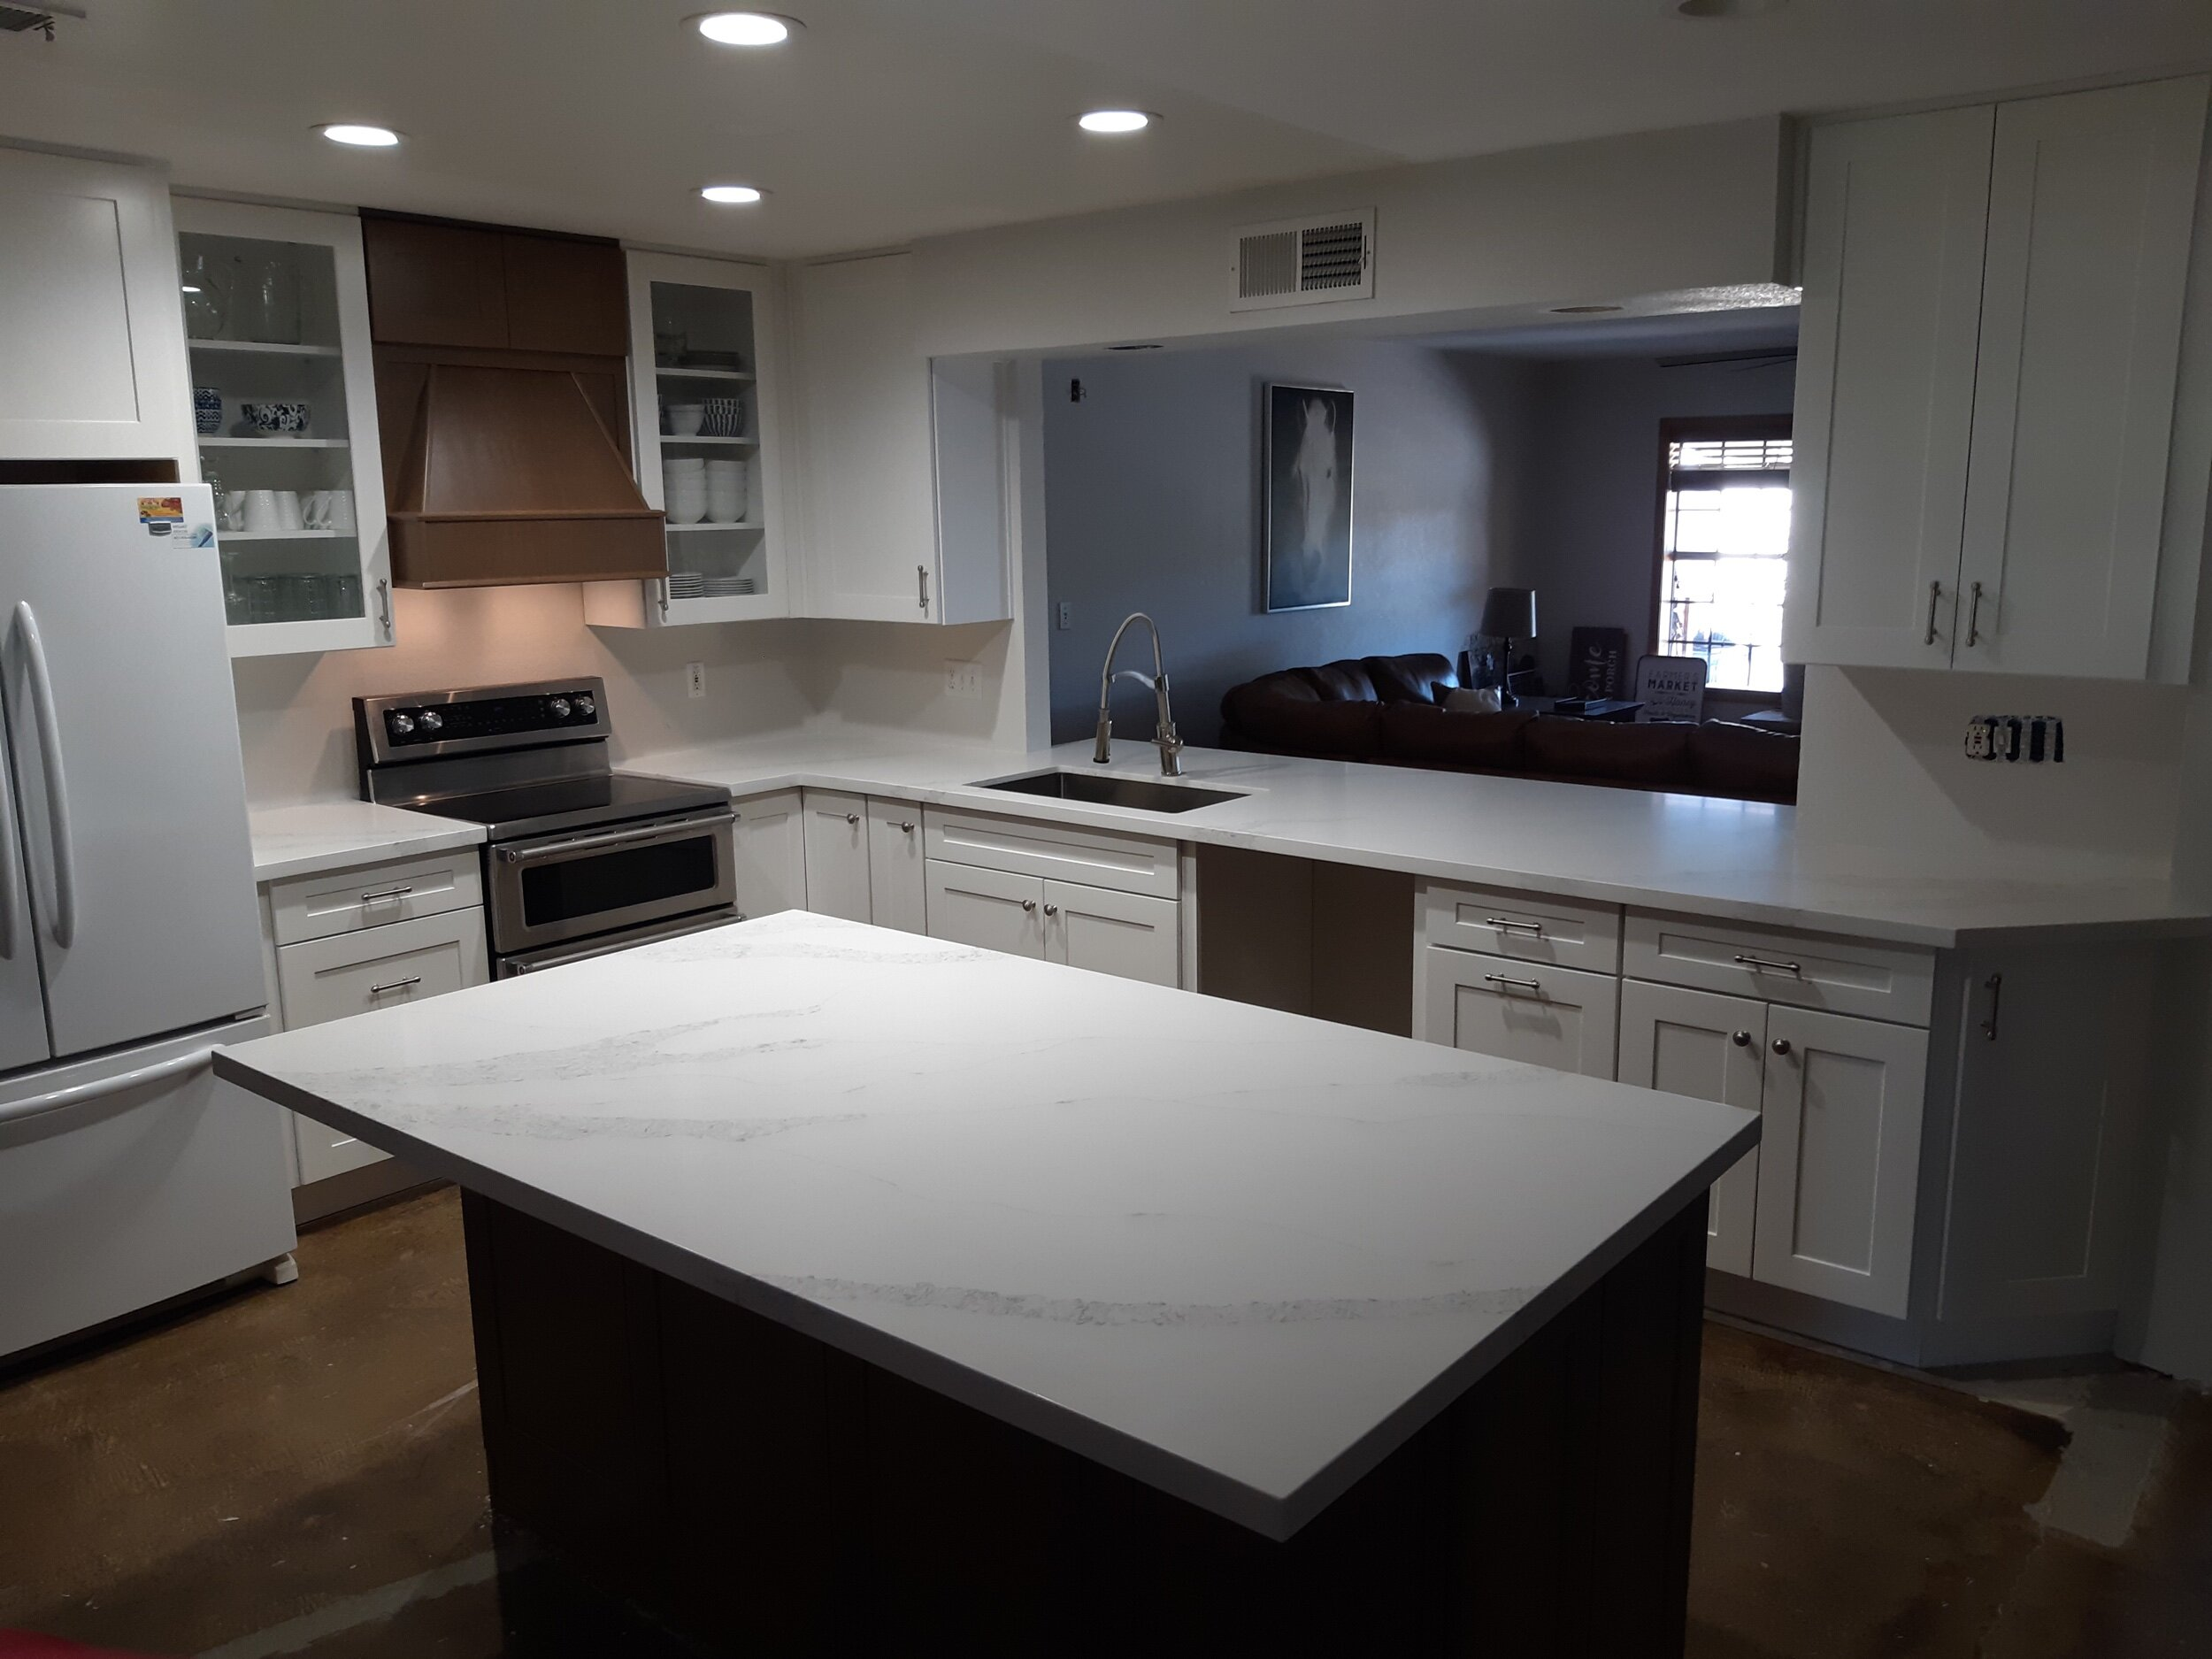 Quartz countertops - Quartz countertops have grown in popularity over the last few years. With the look of natural stone, minus all the maintenance, adding quartz countertops to your kitchen or bathroom can be a great way to spruce your home up. With a wide variety of high quality Quartz countertops, getting the latest looks for your modern kitchen has never been easier.